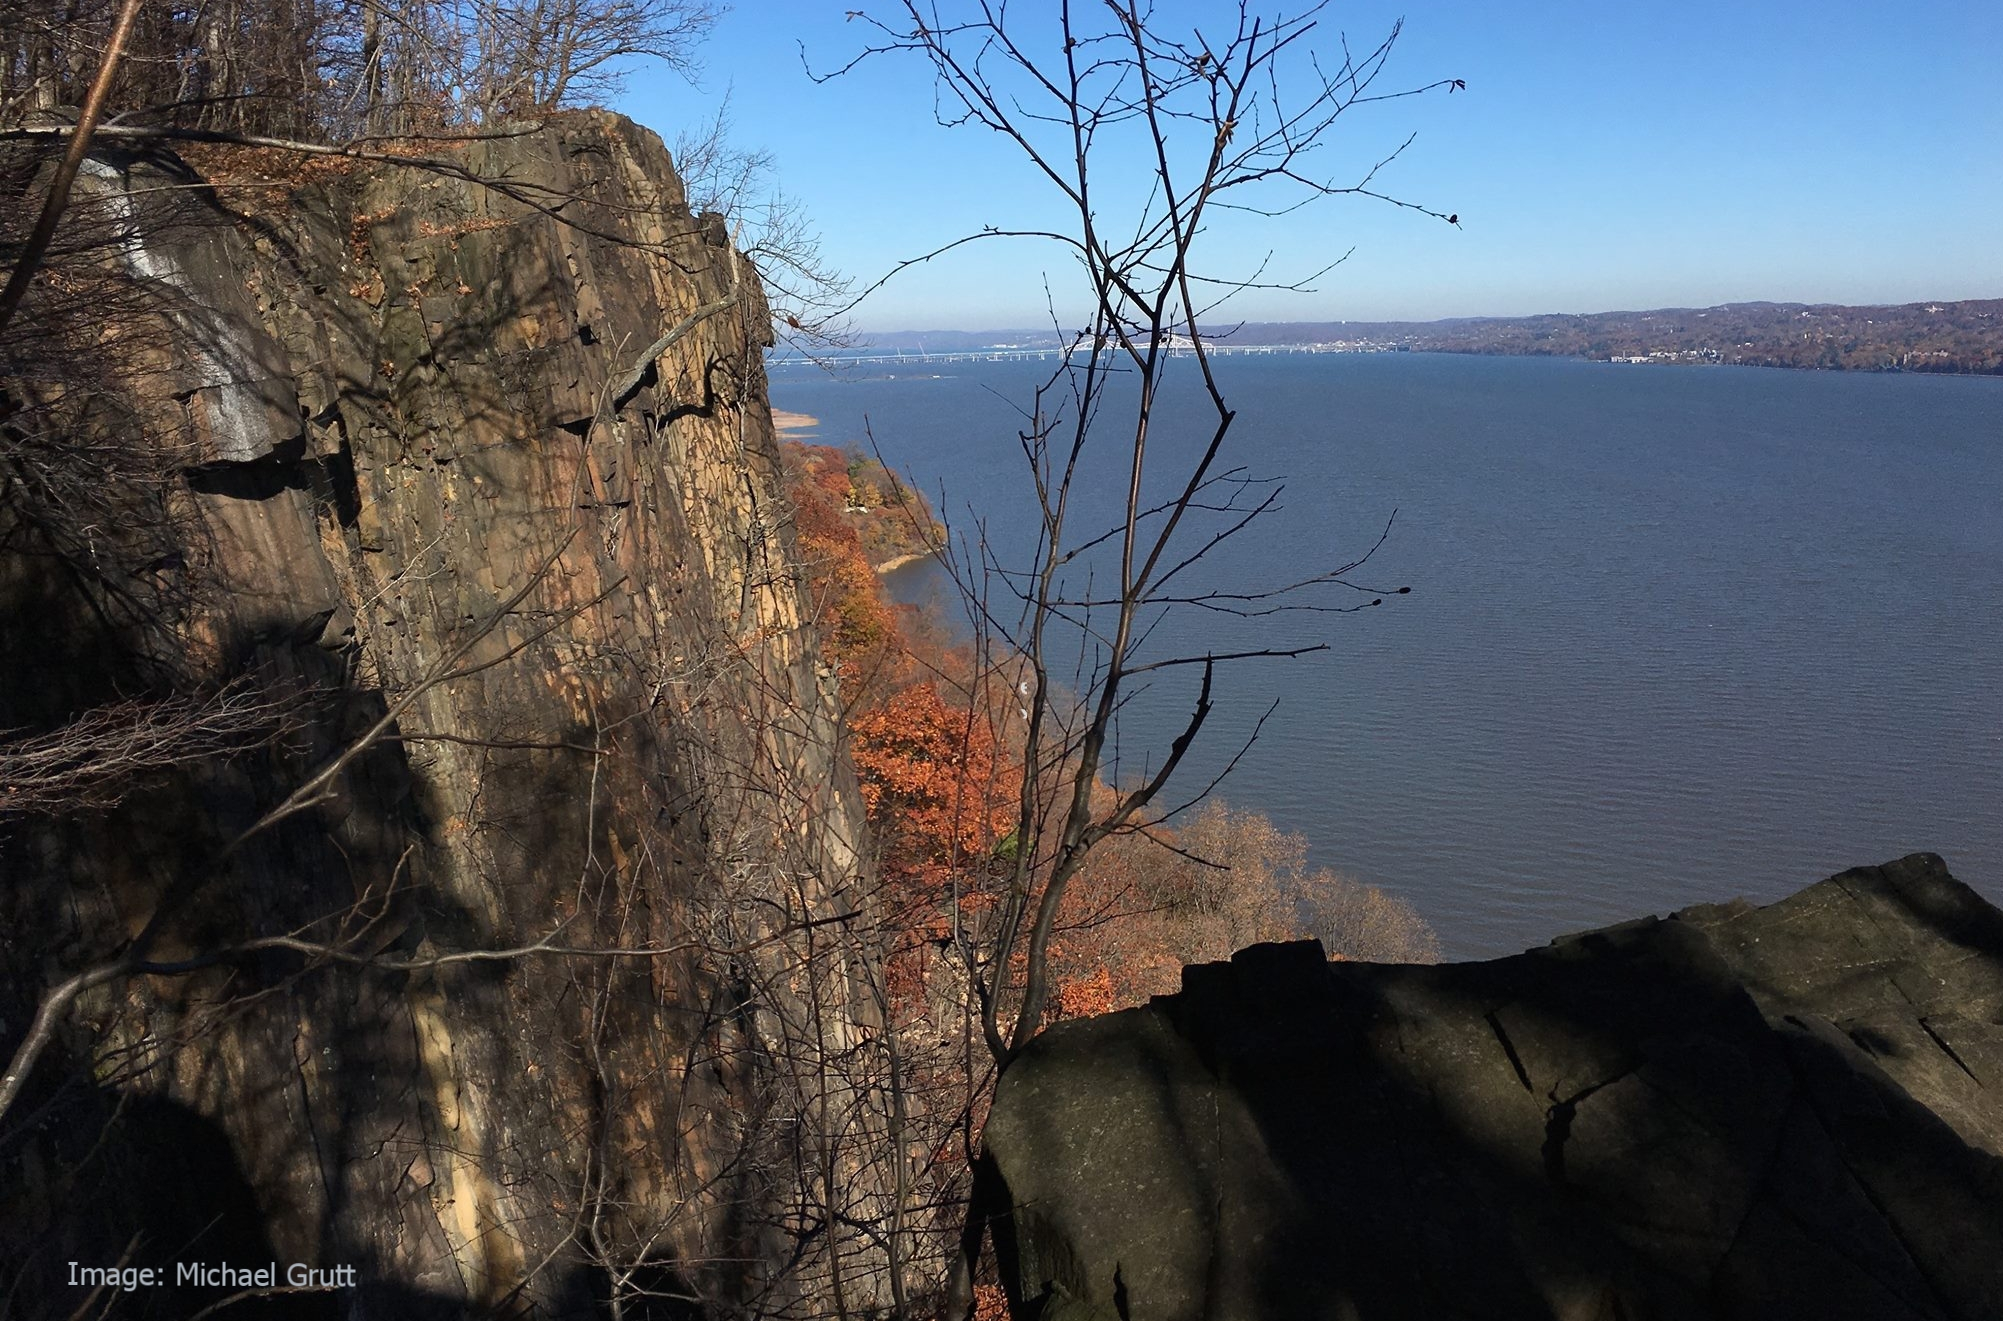 THE VIEW OF THE HUDSON RIVER FROM THE PALISADES' (NEW JERSEY SIDE) GRANITE CLIFFS IS UNFORGETTABLE AND A GREAT SPOT TO SEE PEREGRINE FALCONS AND OTHER RAPTORS SOARING OVER THE WATER. IMAGE: MICHAEL GRUTT